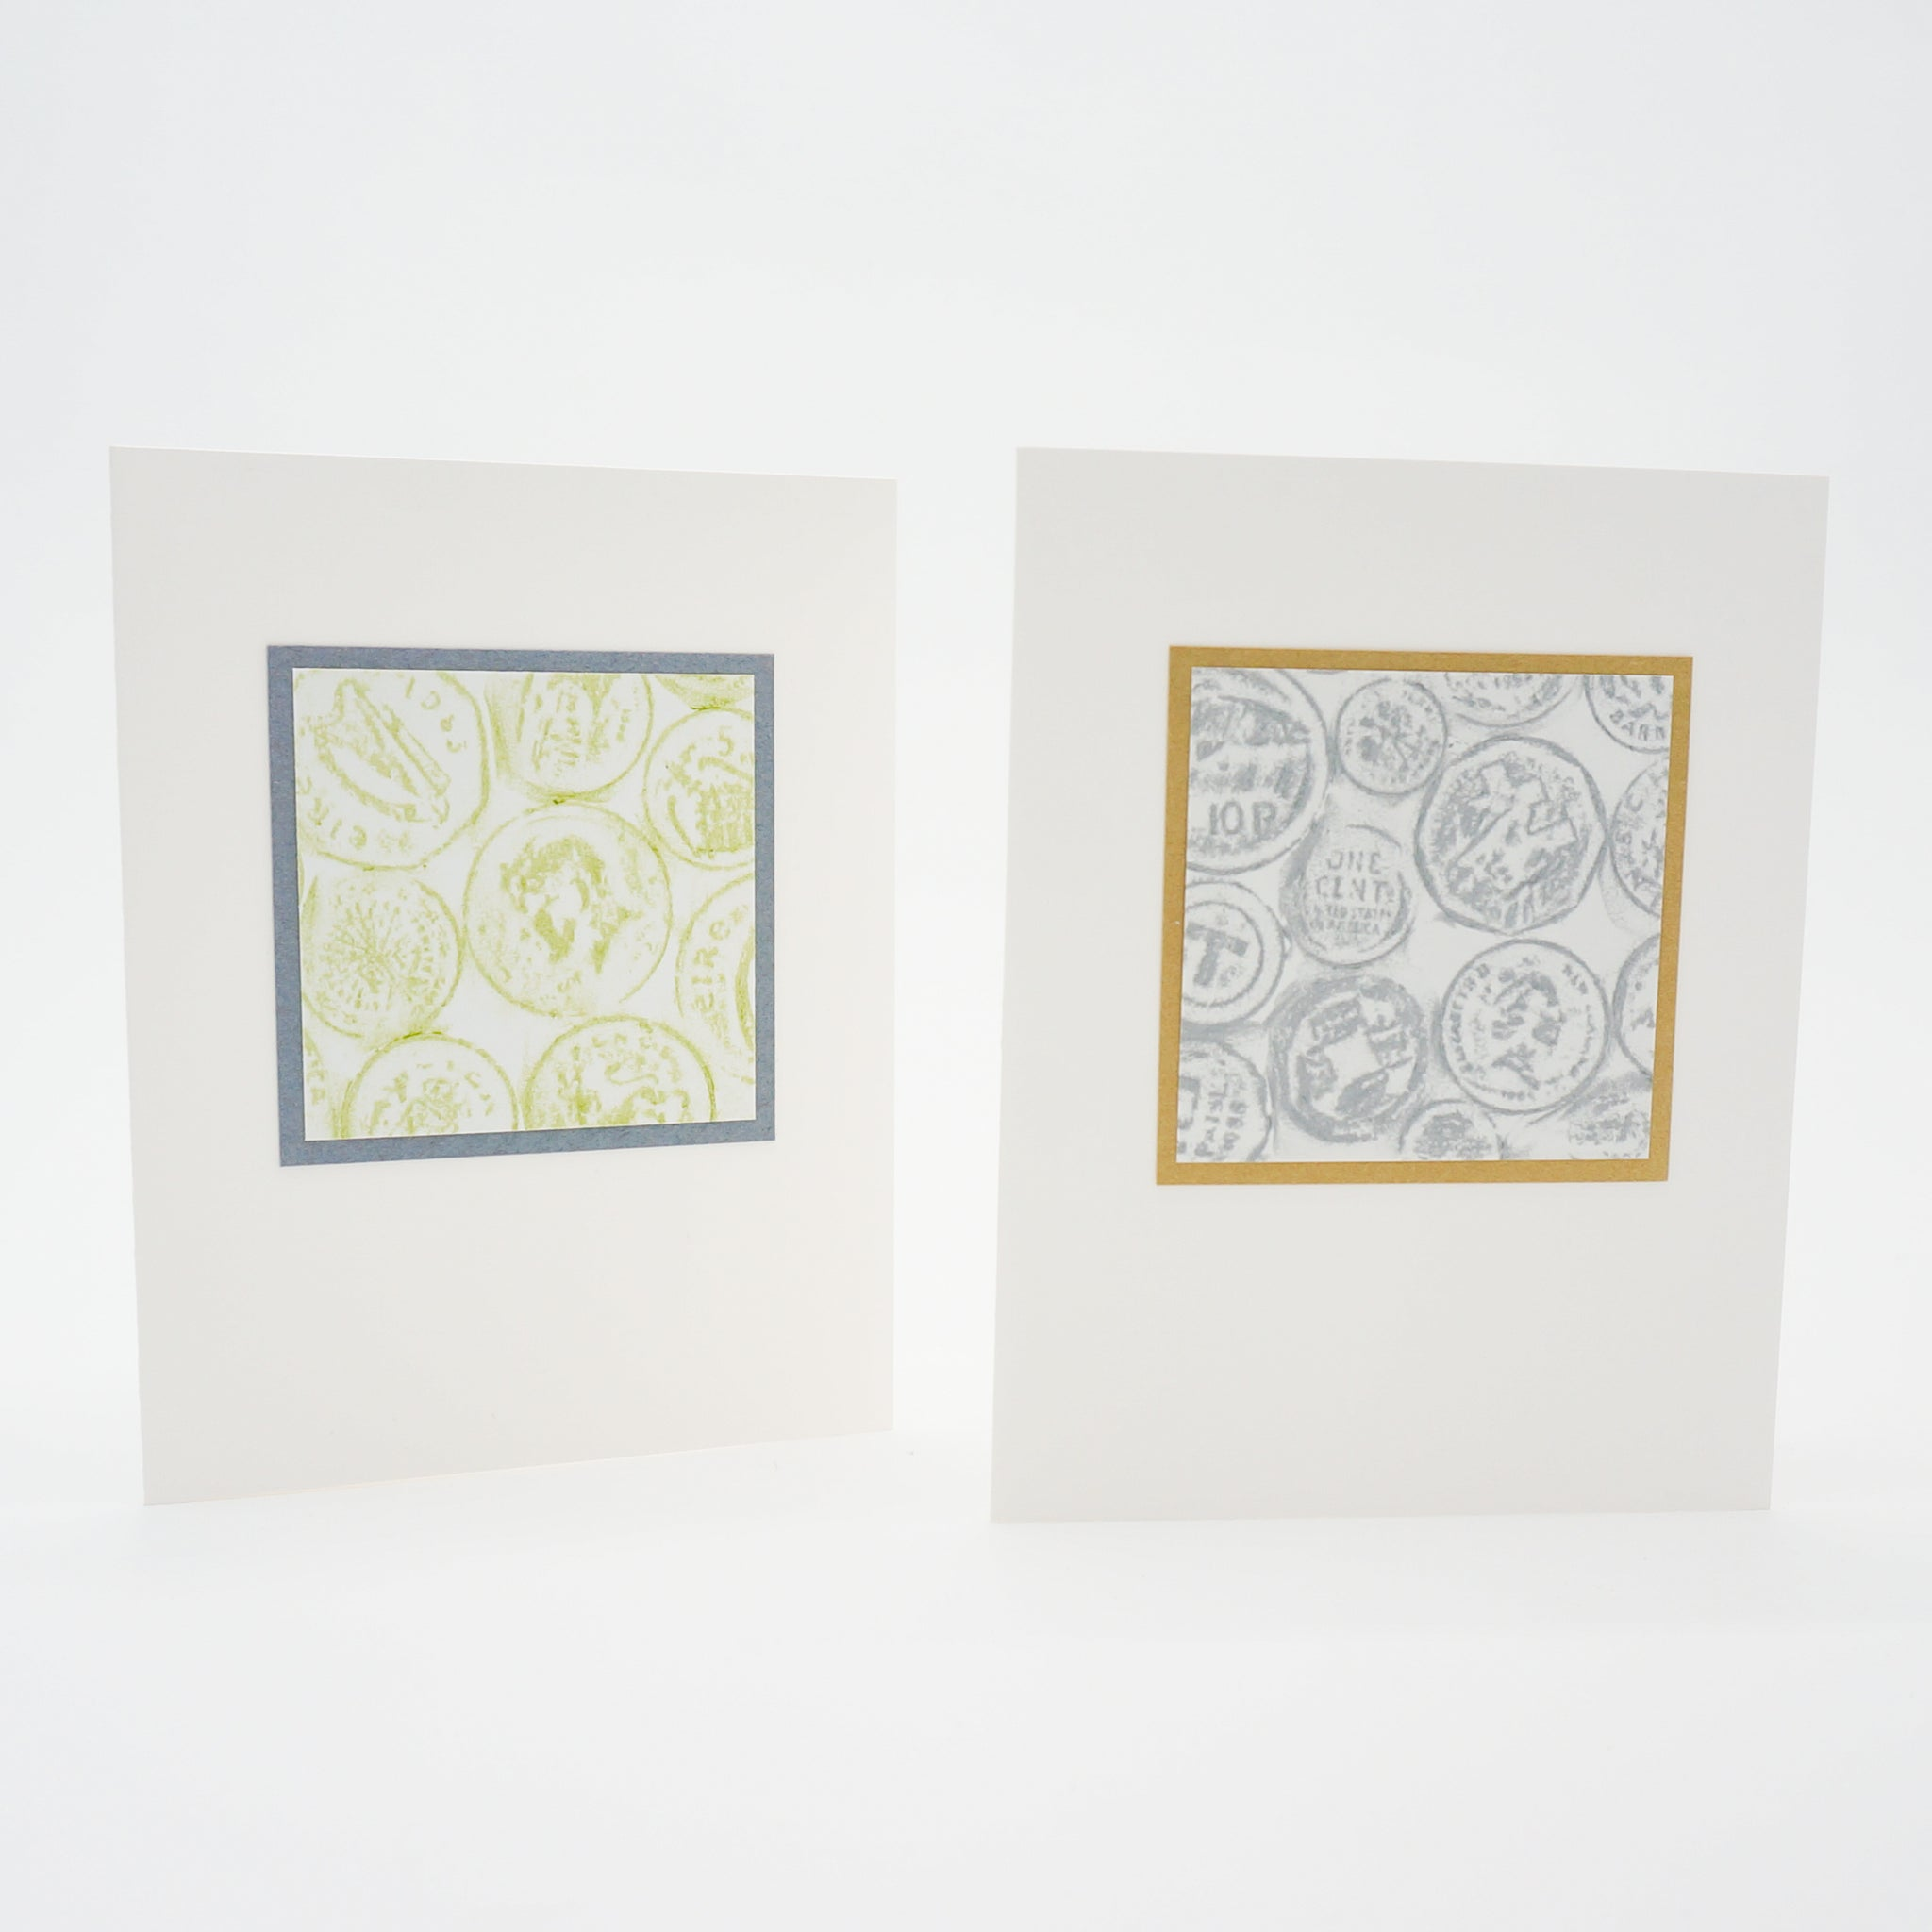 blank notecards - crayon rubbings of international coins